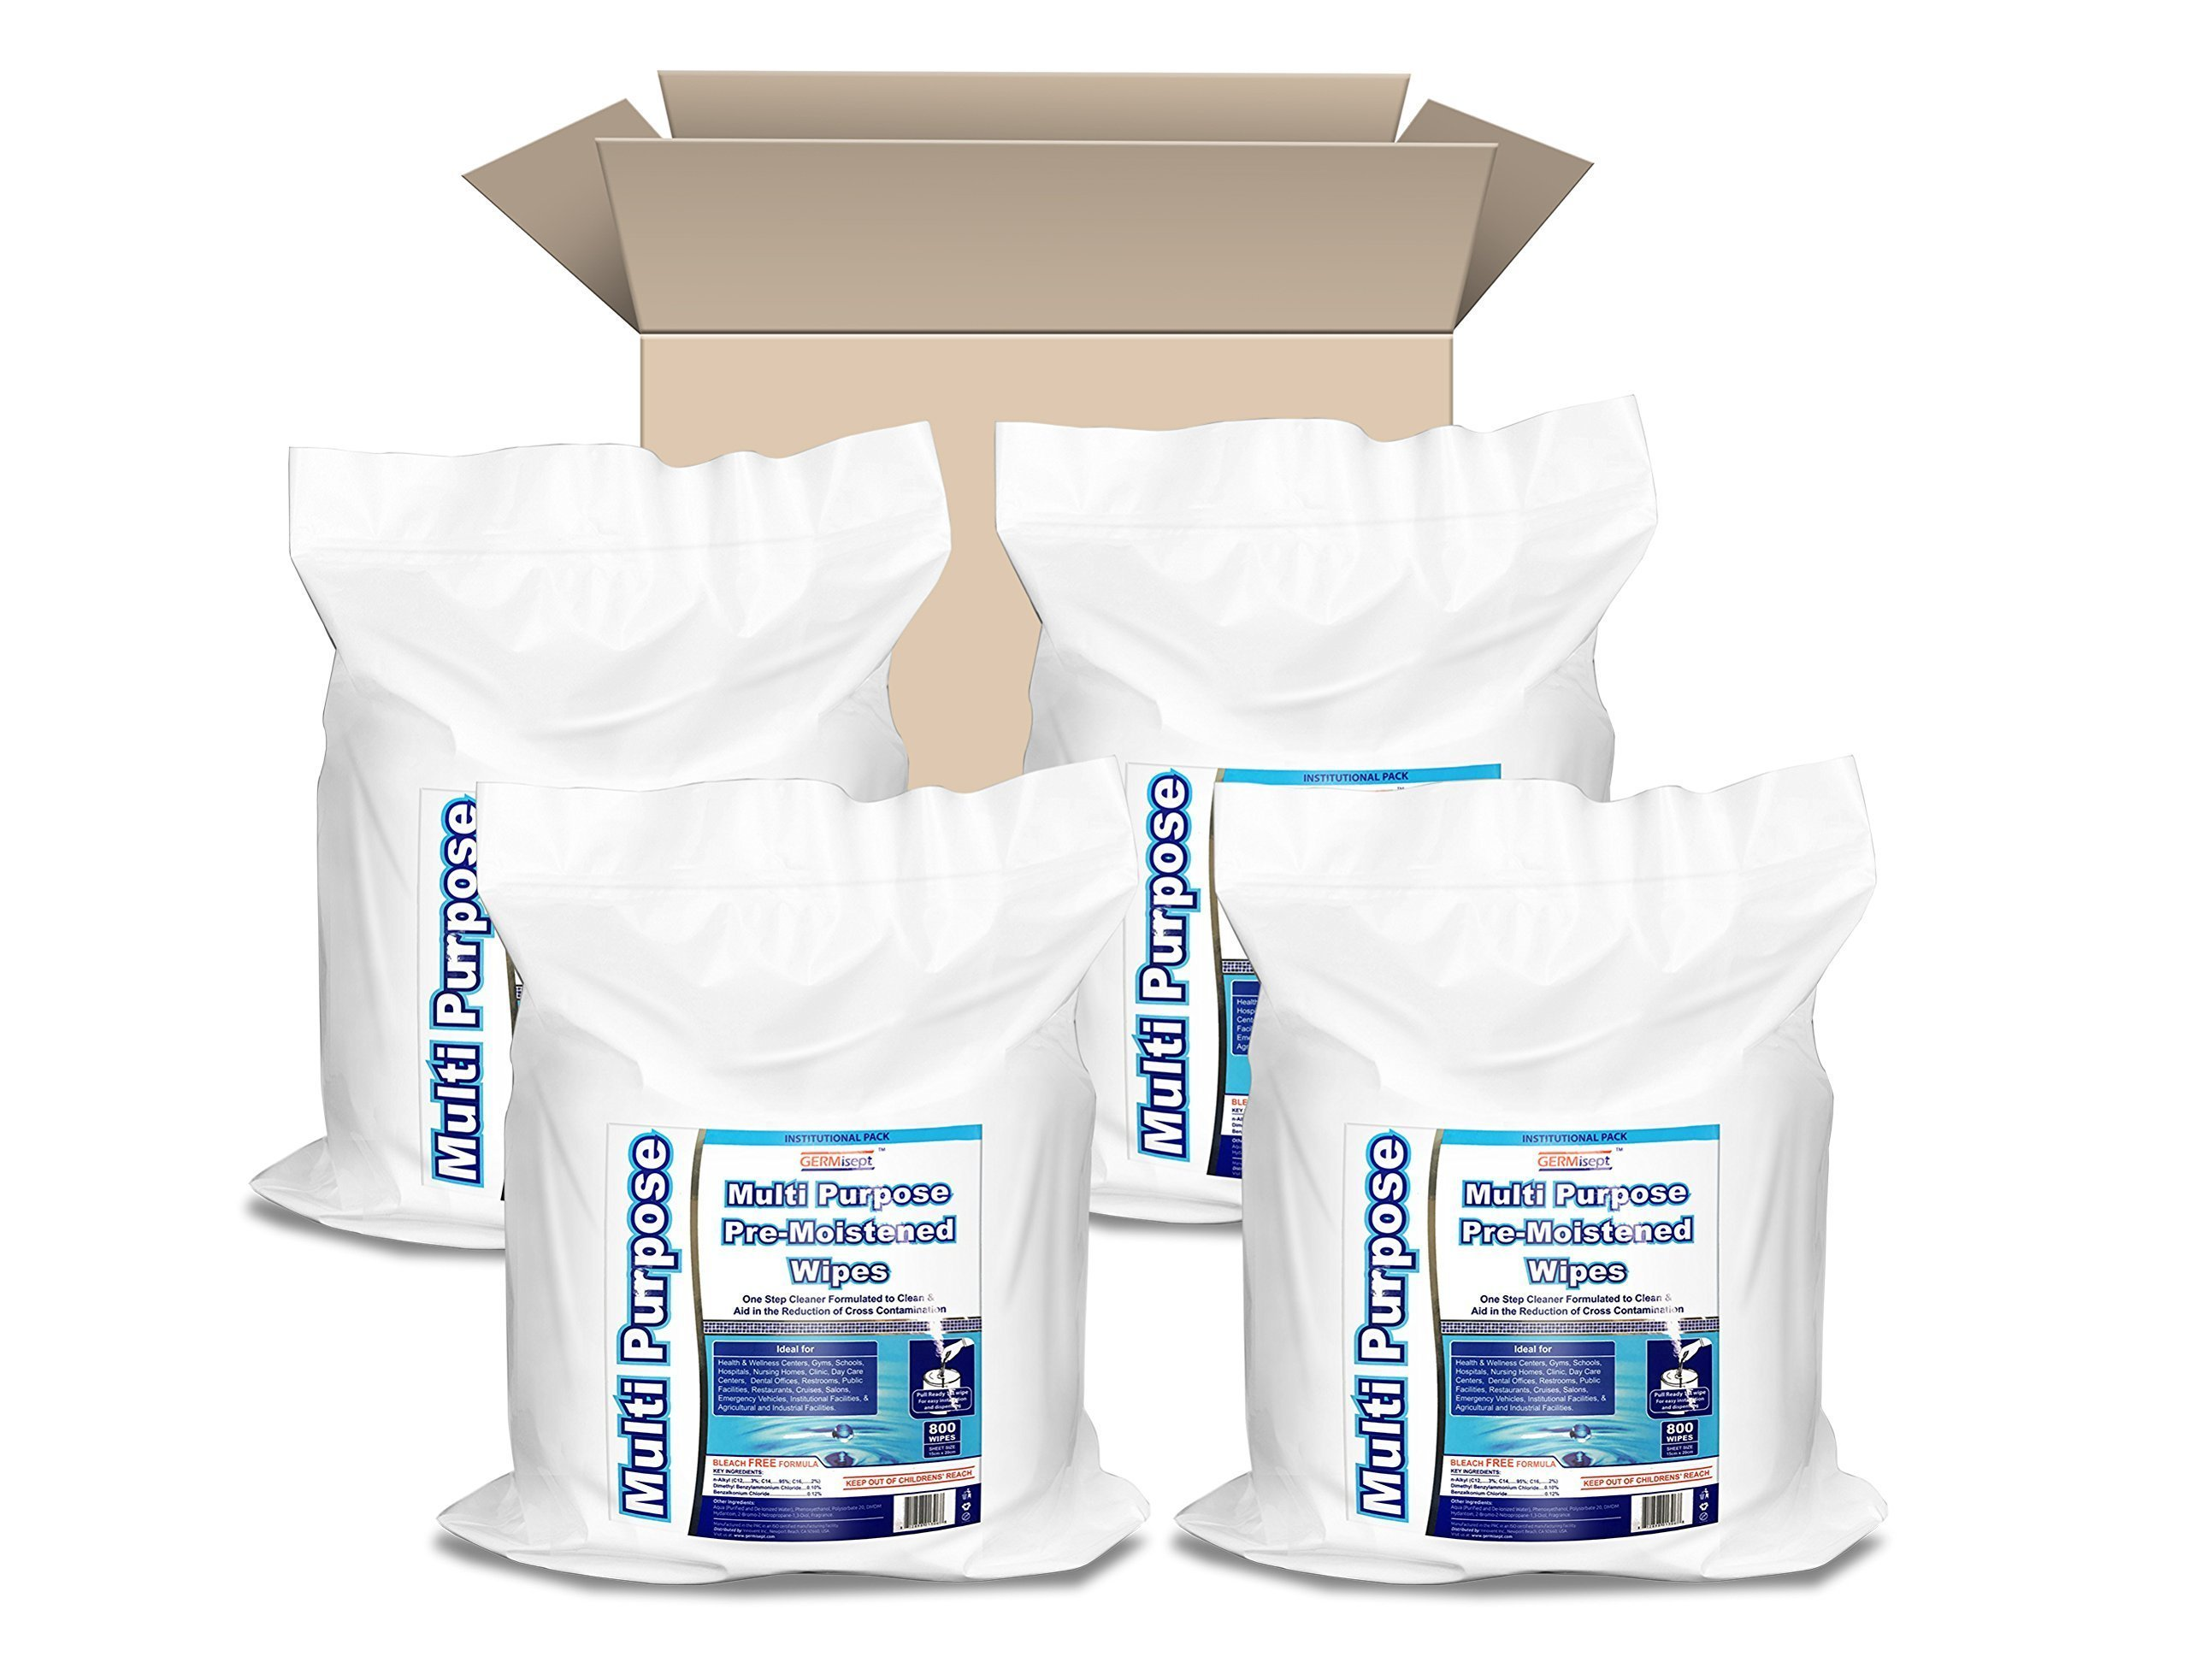 GERMISEPT Multipurpose Gym Wipes & Wellness Center Cleaning Wipes/Cart Wipes (3200 Wipes = 800 Wipes/Roll X 4 Rolls/Case)